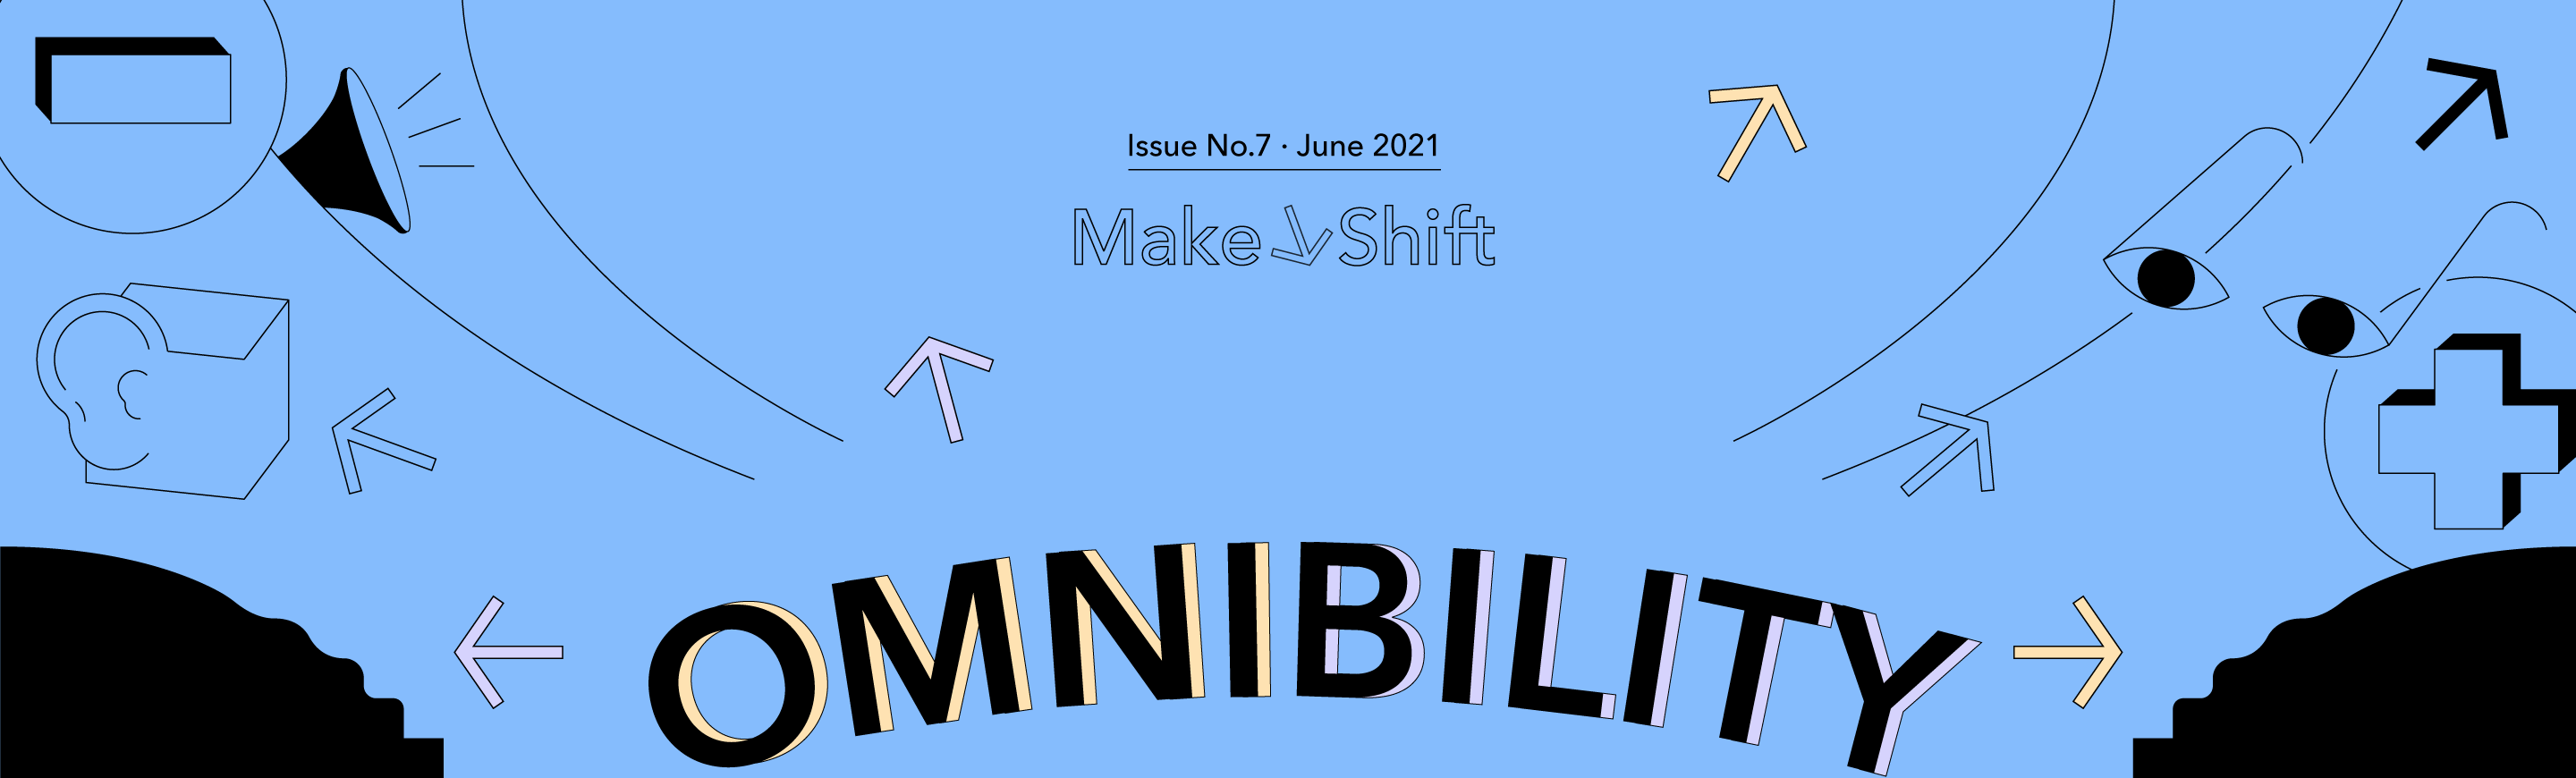 Abstract cartoon that displays an ear, a megaphone, arrows and a plus sign. The center of the image states the trend title: OMNIBILITY.